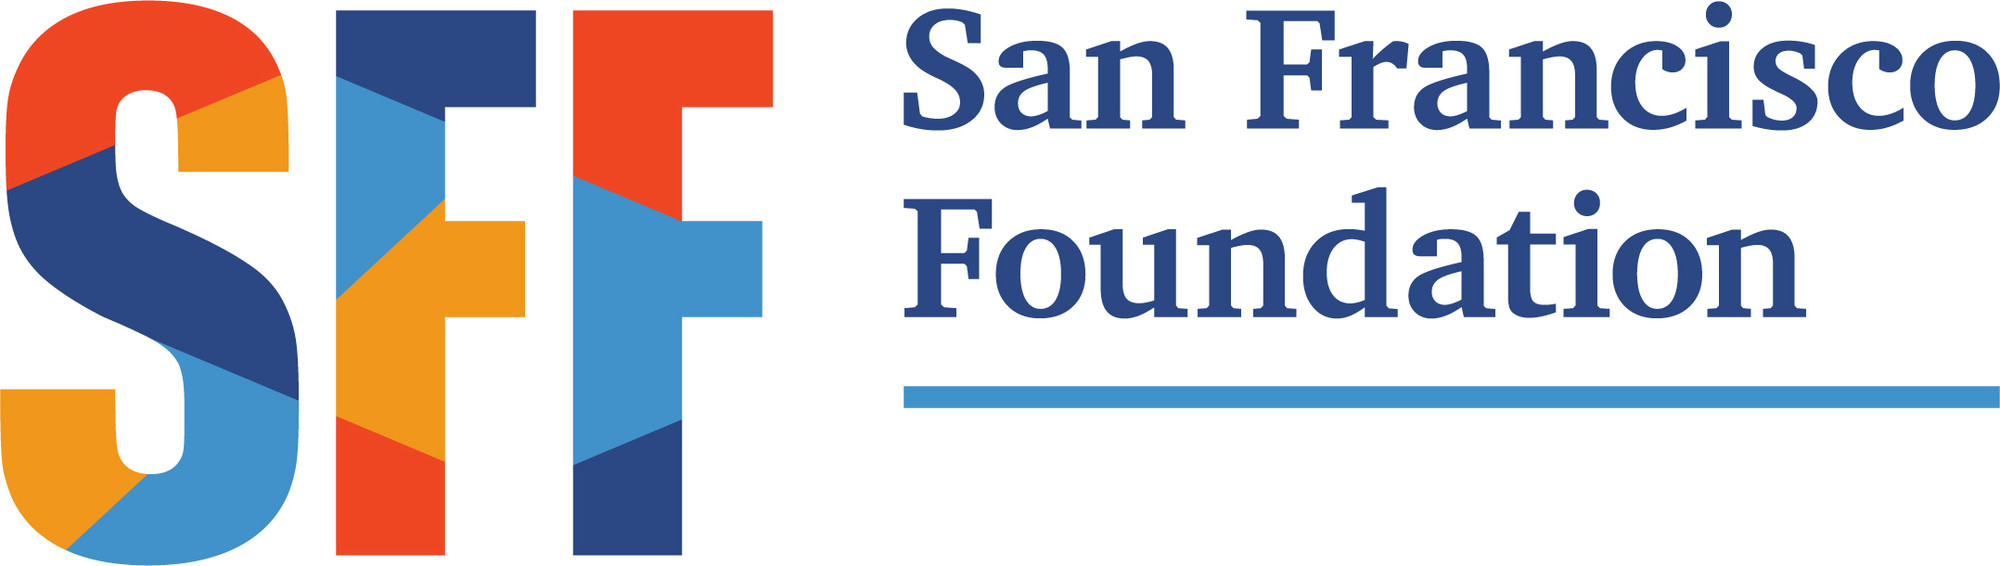 The San Francisco Foundation